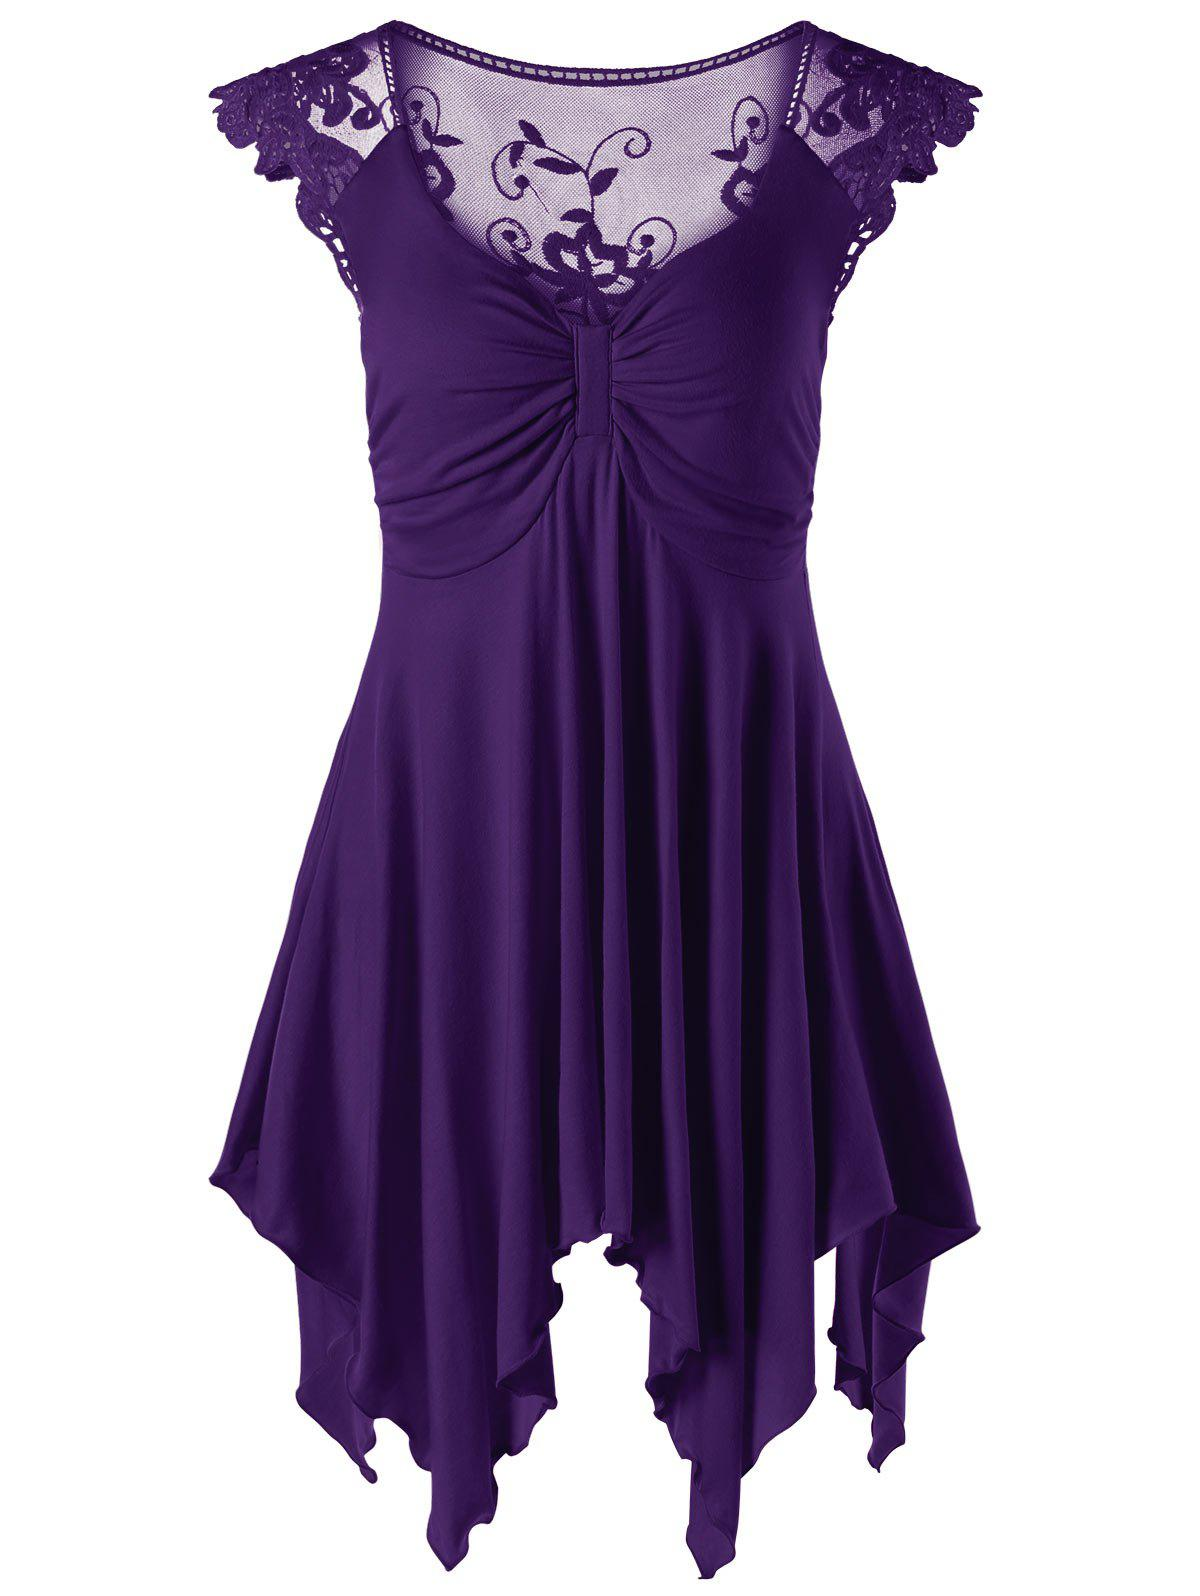 Lace Panel Cap Sleeve Asymmetric Top - PURPLE M